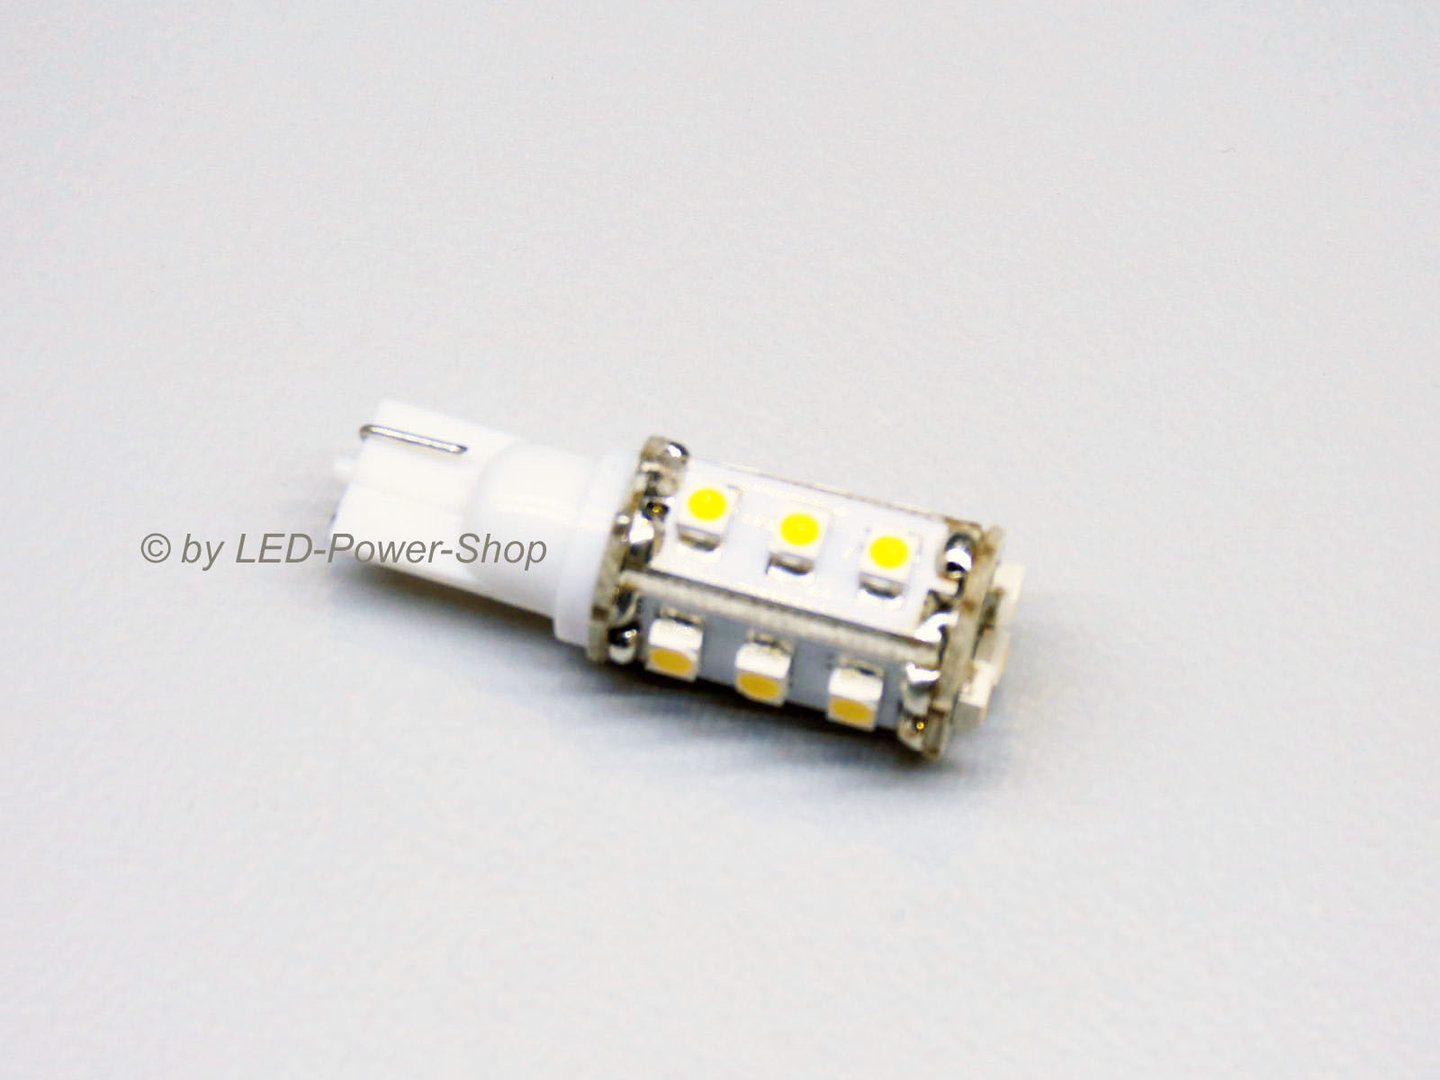 T10 15 LED SMD 10-30V warmweiß